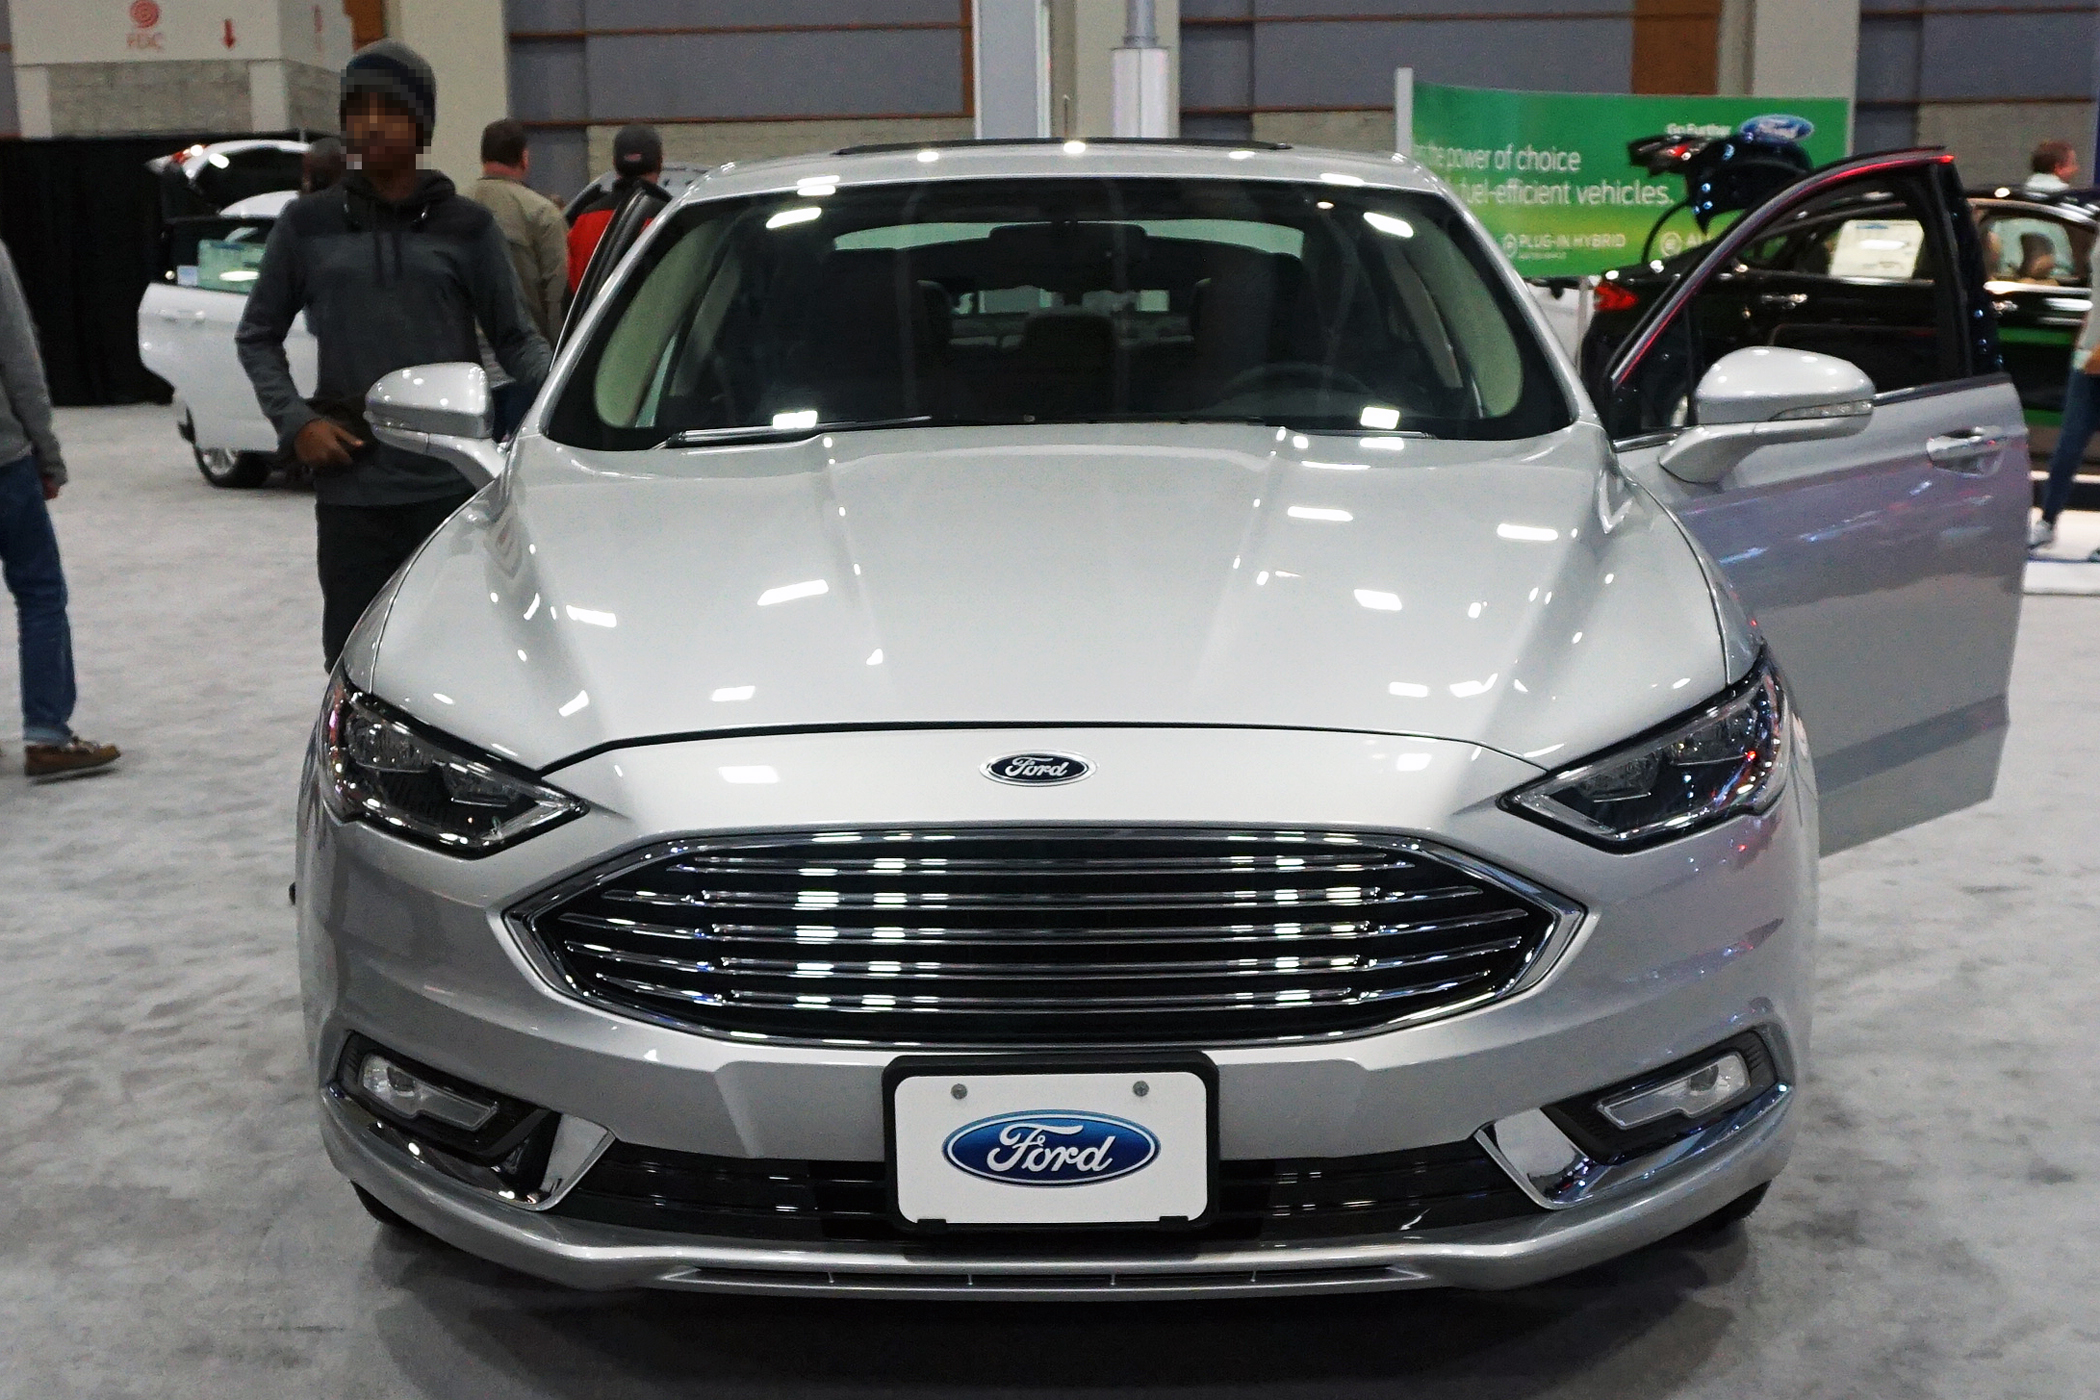 G To Rpm Conversion Chart: Ford Fusion Hybrid - Wikipedia,Chart